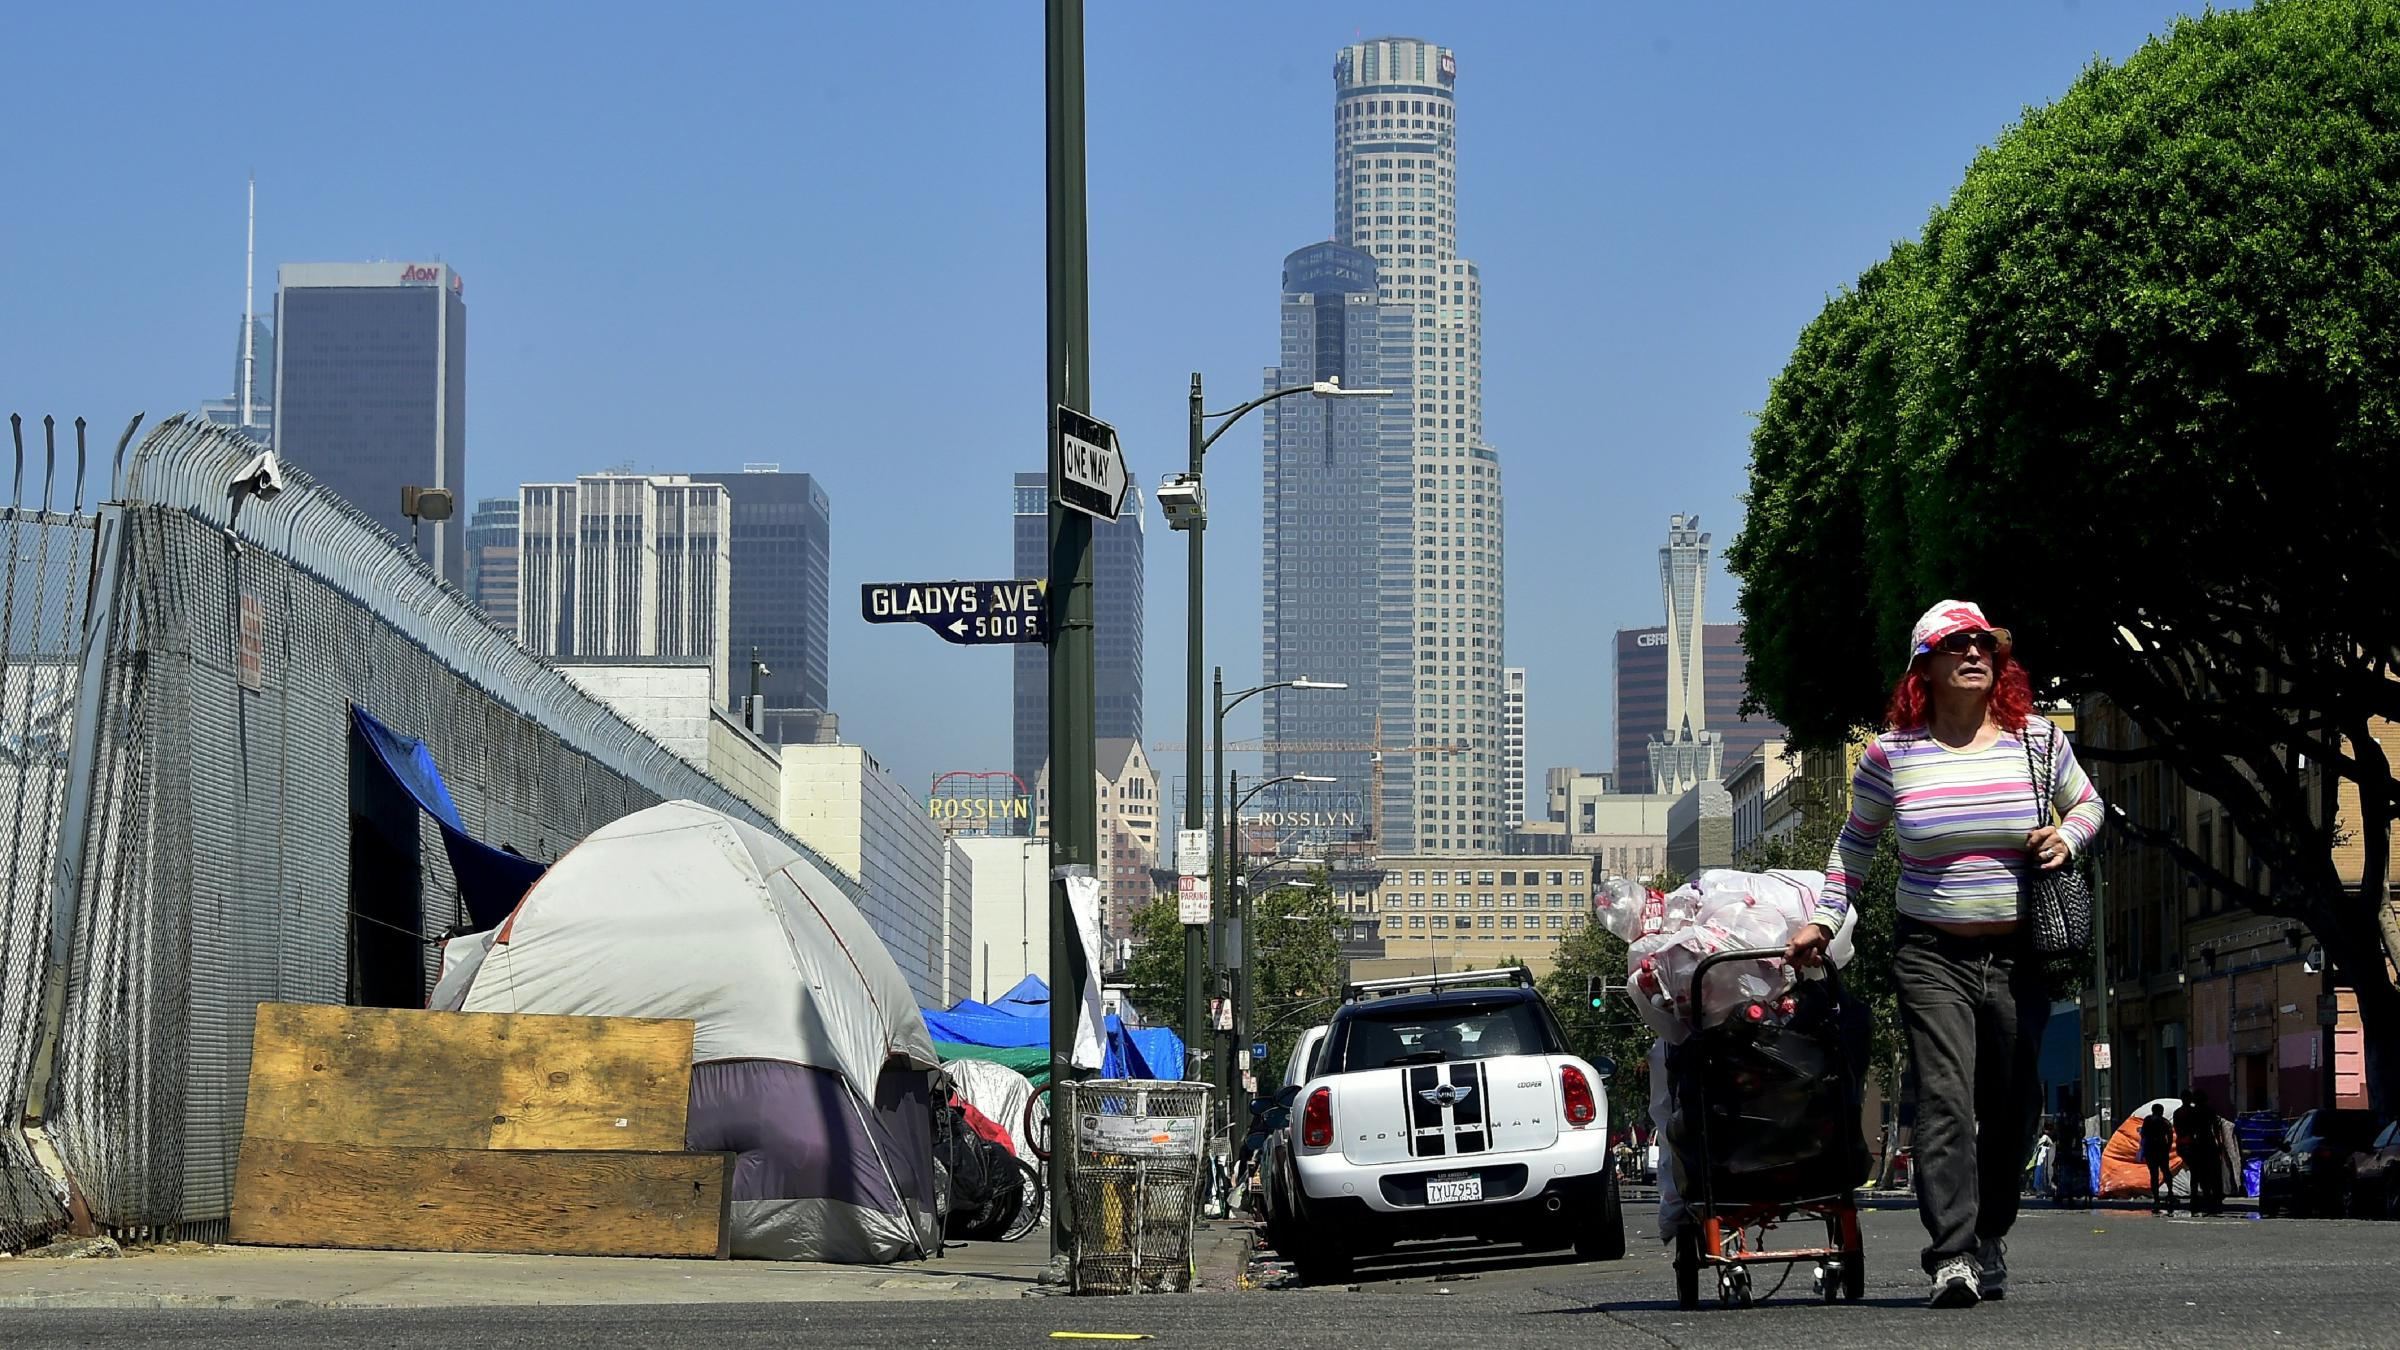 Homeless Population Rises, Driven By West Coast Affordable